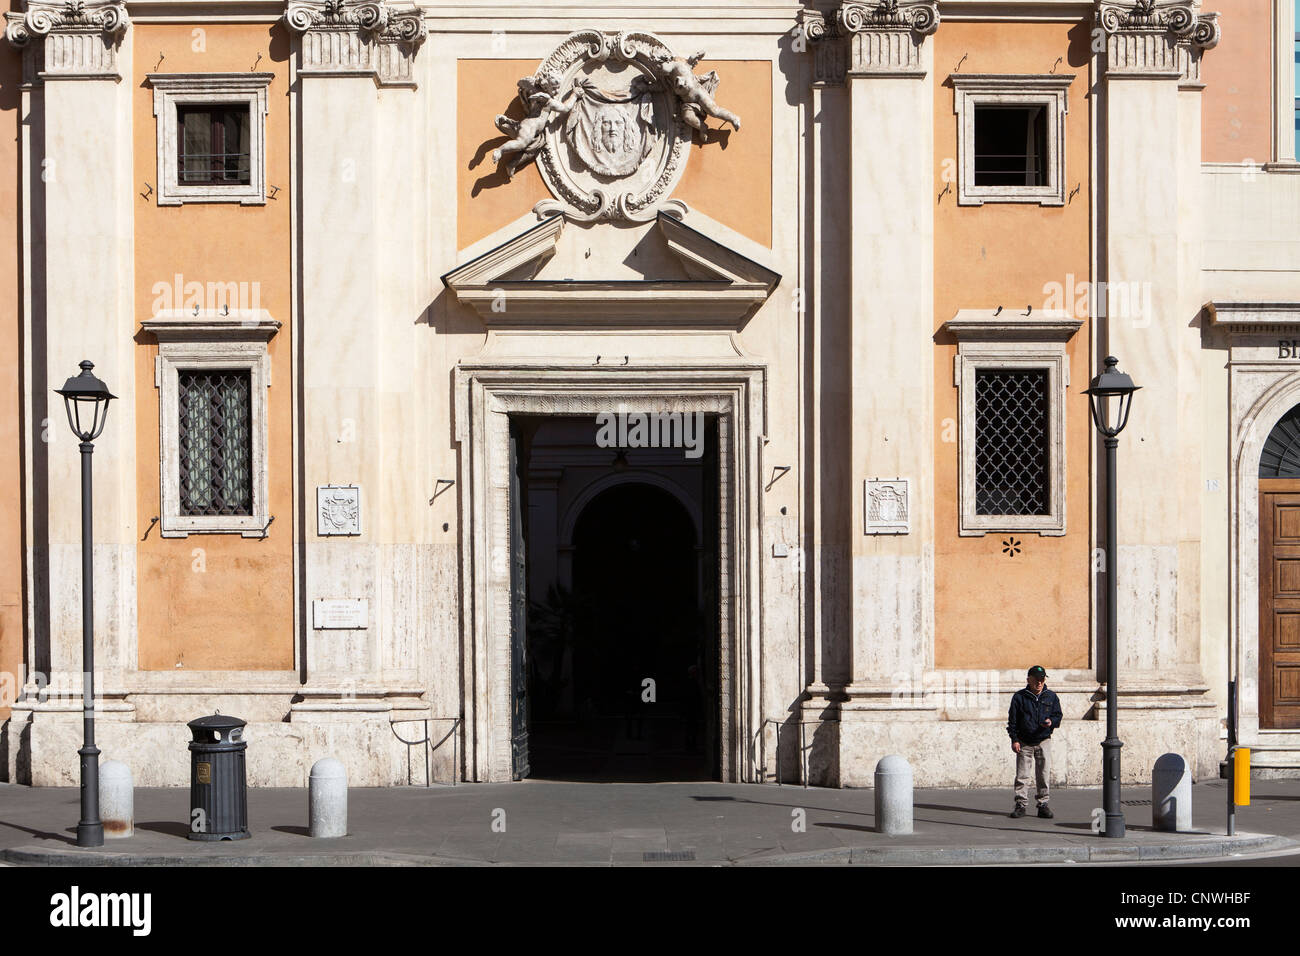 Façade of San Silvestro in Capite (Church of Saint Sylvester the First) interior, Rome, Italy, Europe - Stock Image